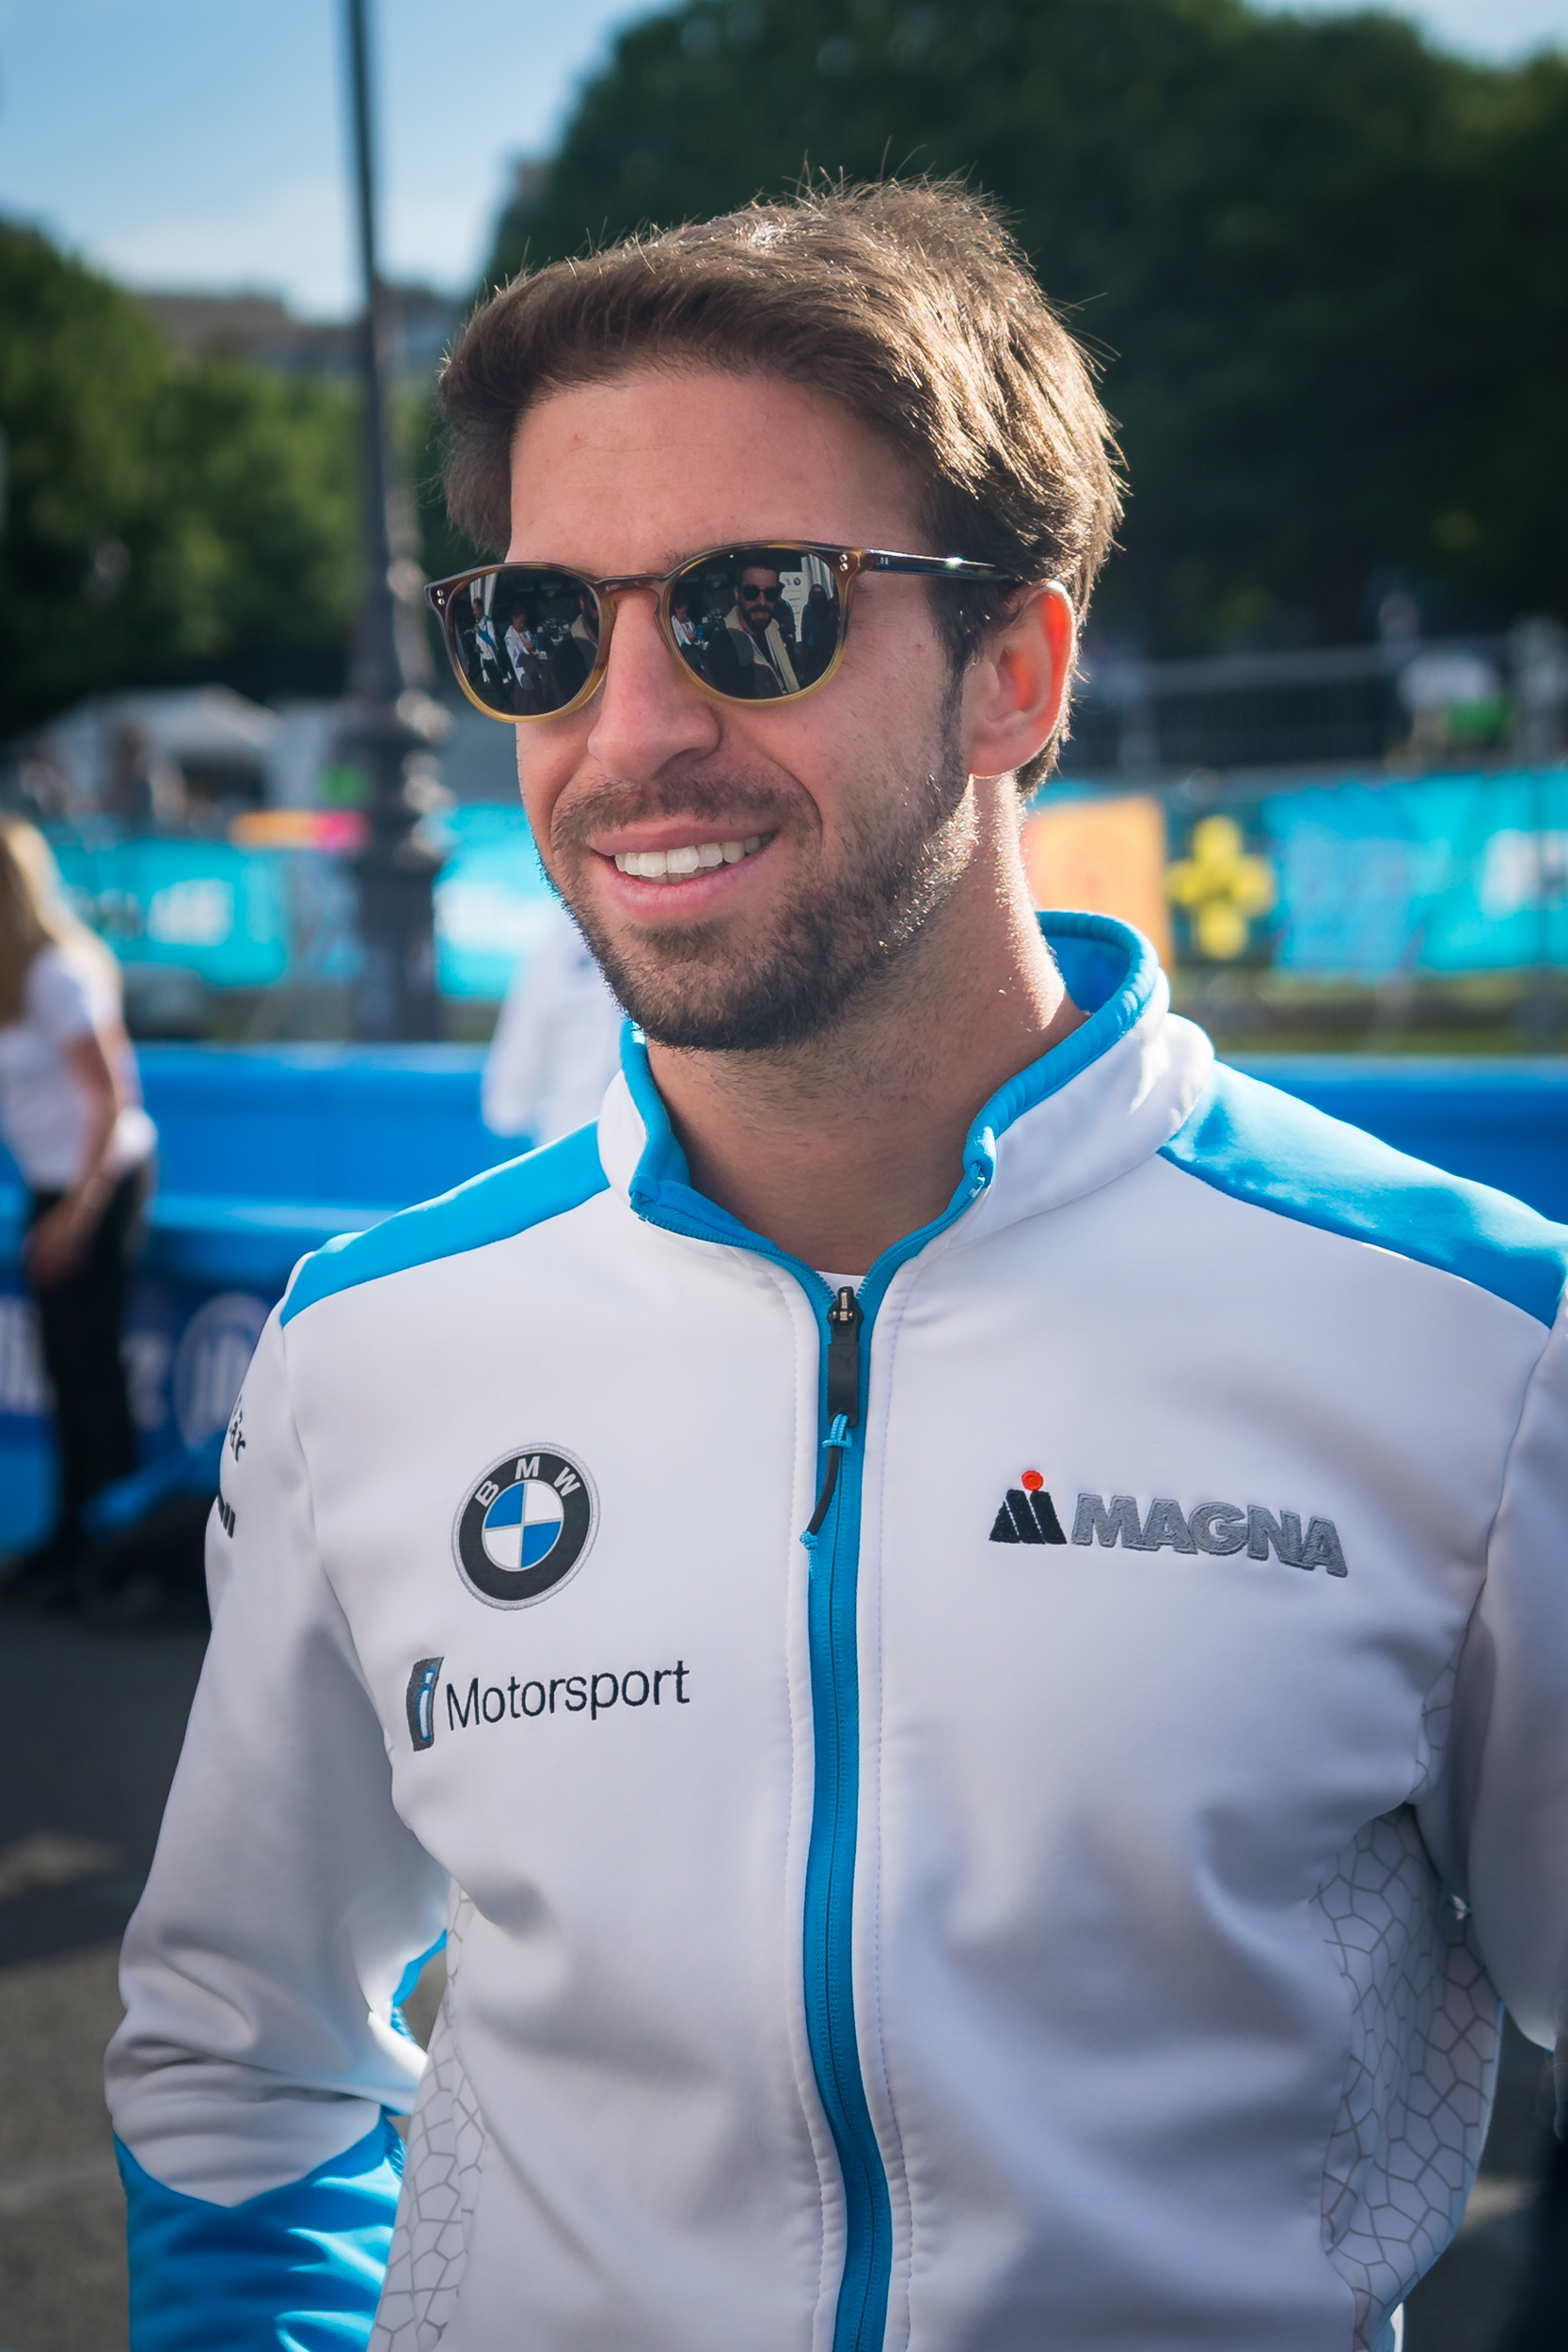 BMW i_Formula E Paris 2019_26&27-04-19_Florian Leger_SHARE & DARE_HD_N°-172.jpg